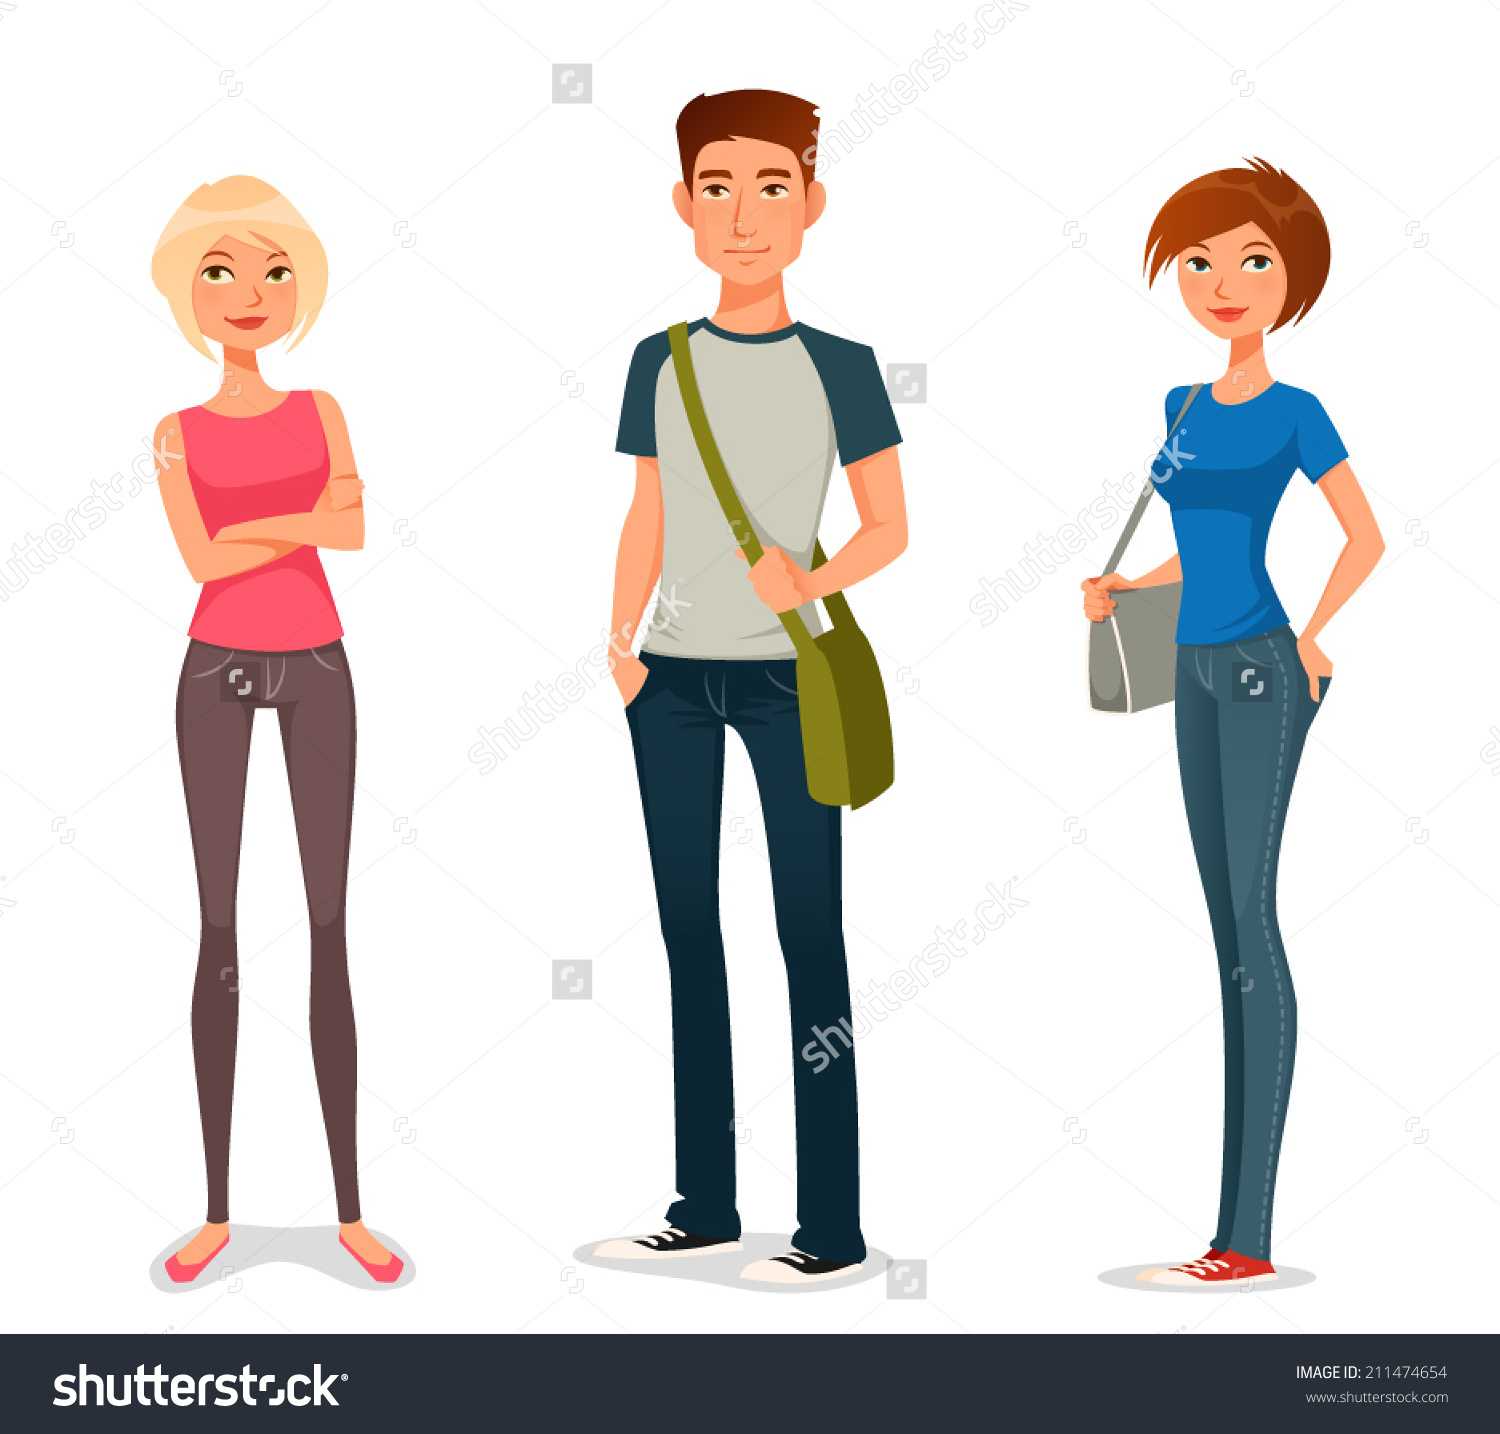 Casual Wear Clipart Clipground